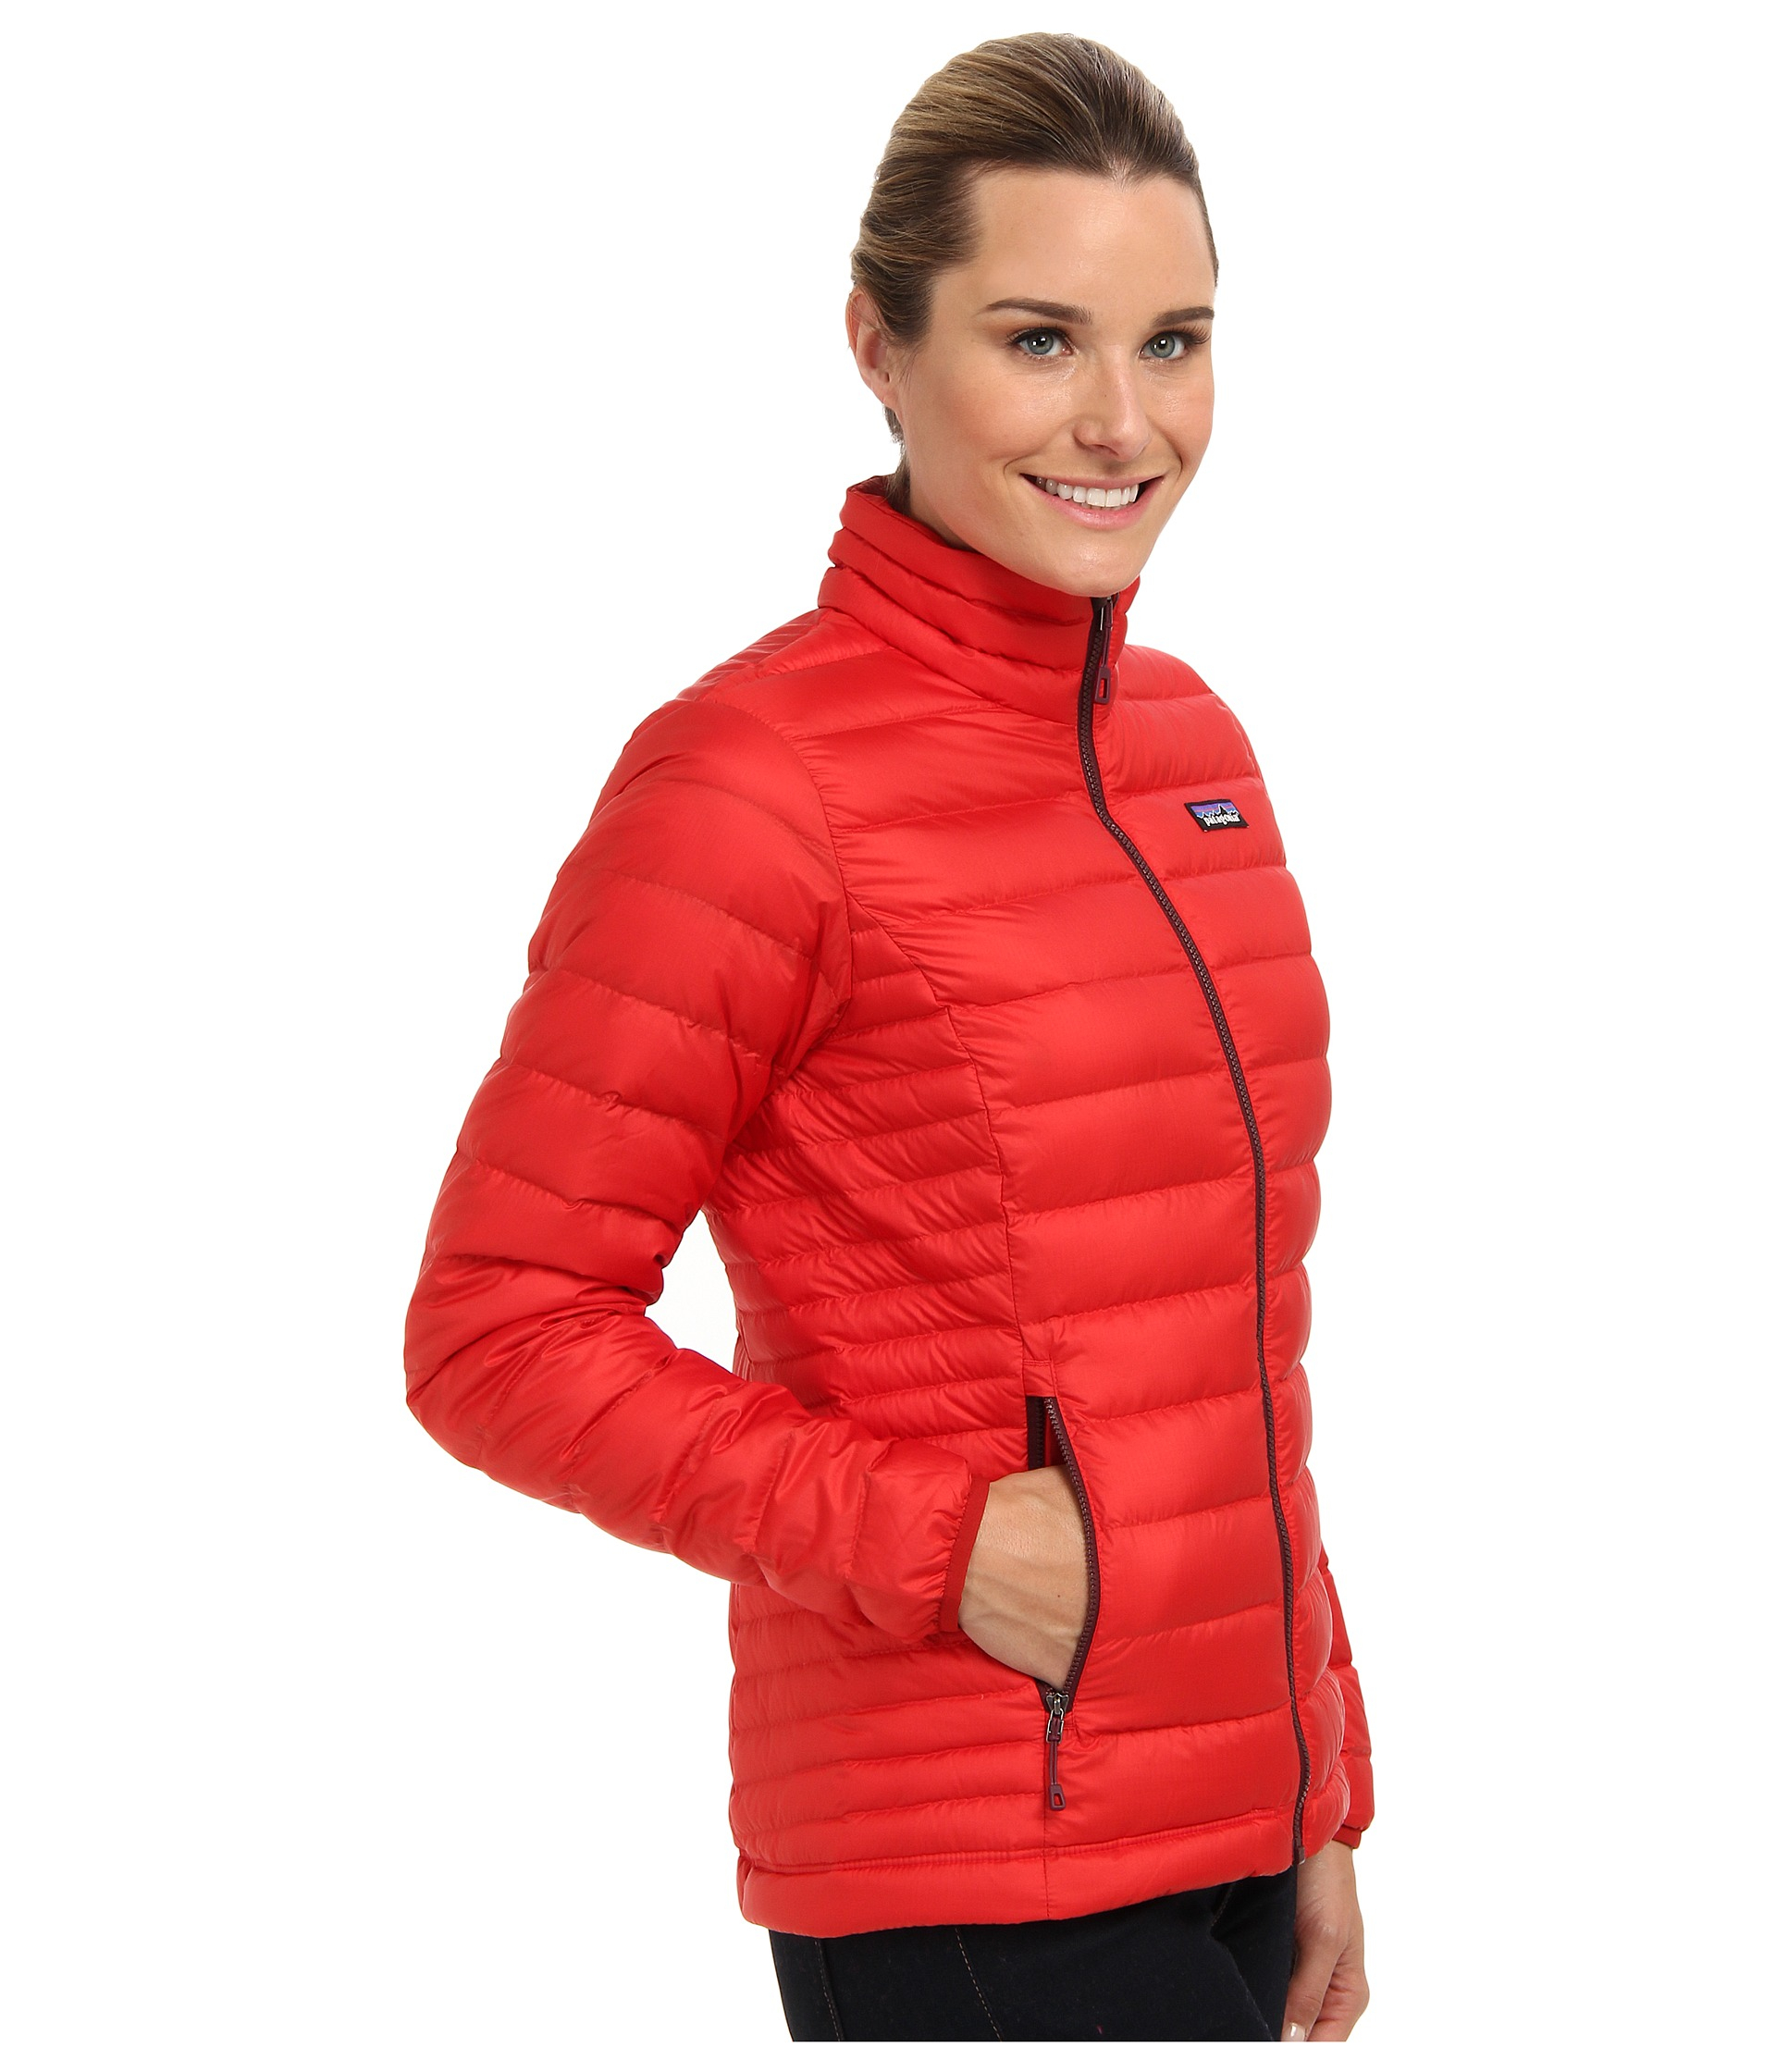 Patagonia Red Jacket: Patagonia Down Sweater Jacket In Red